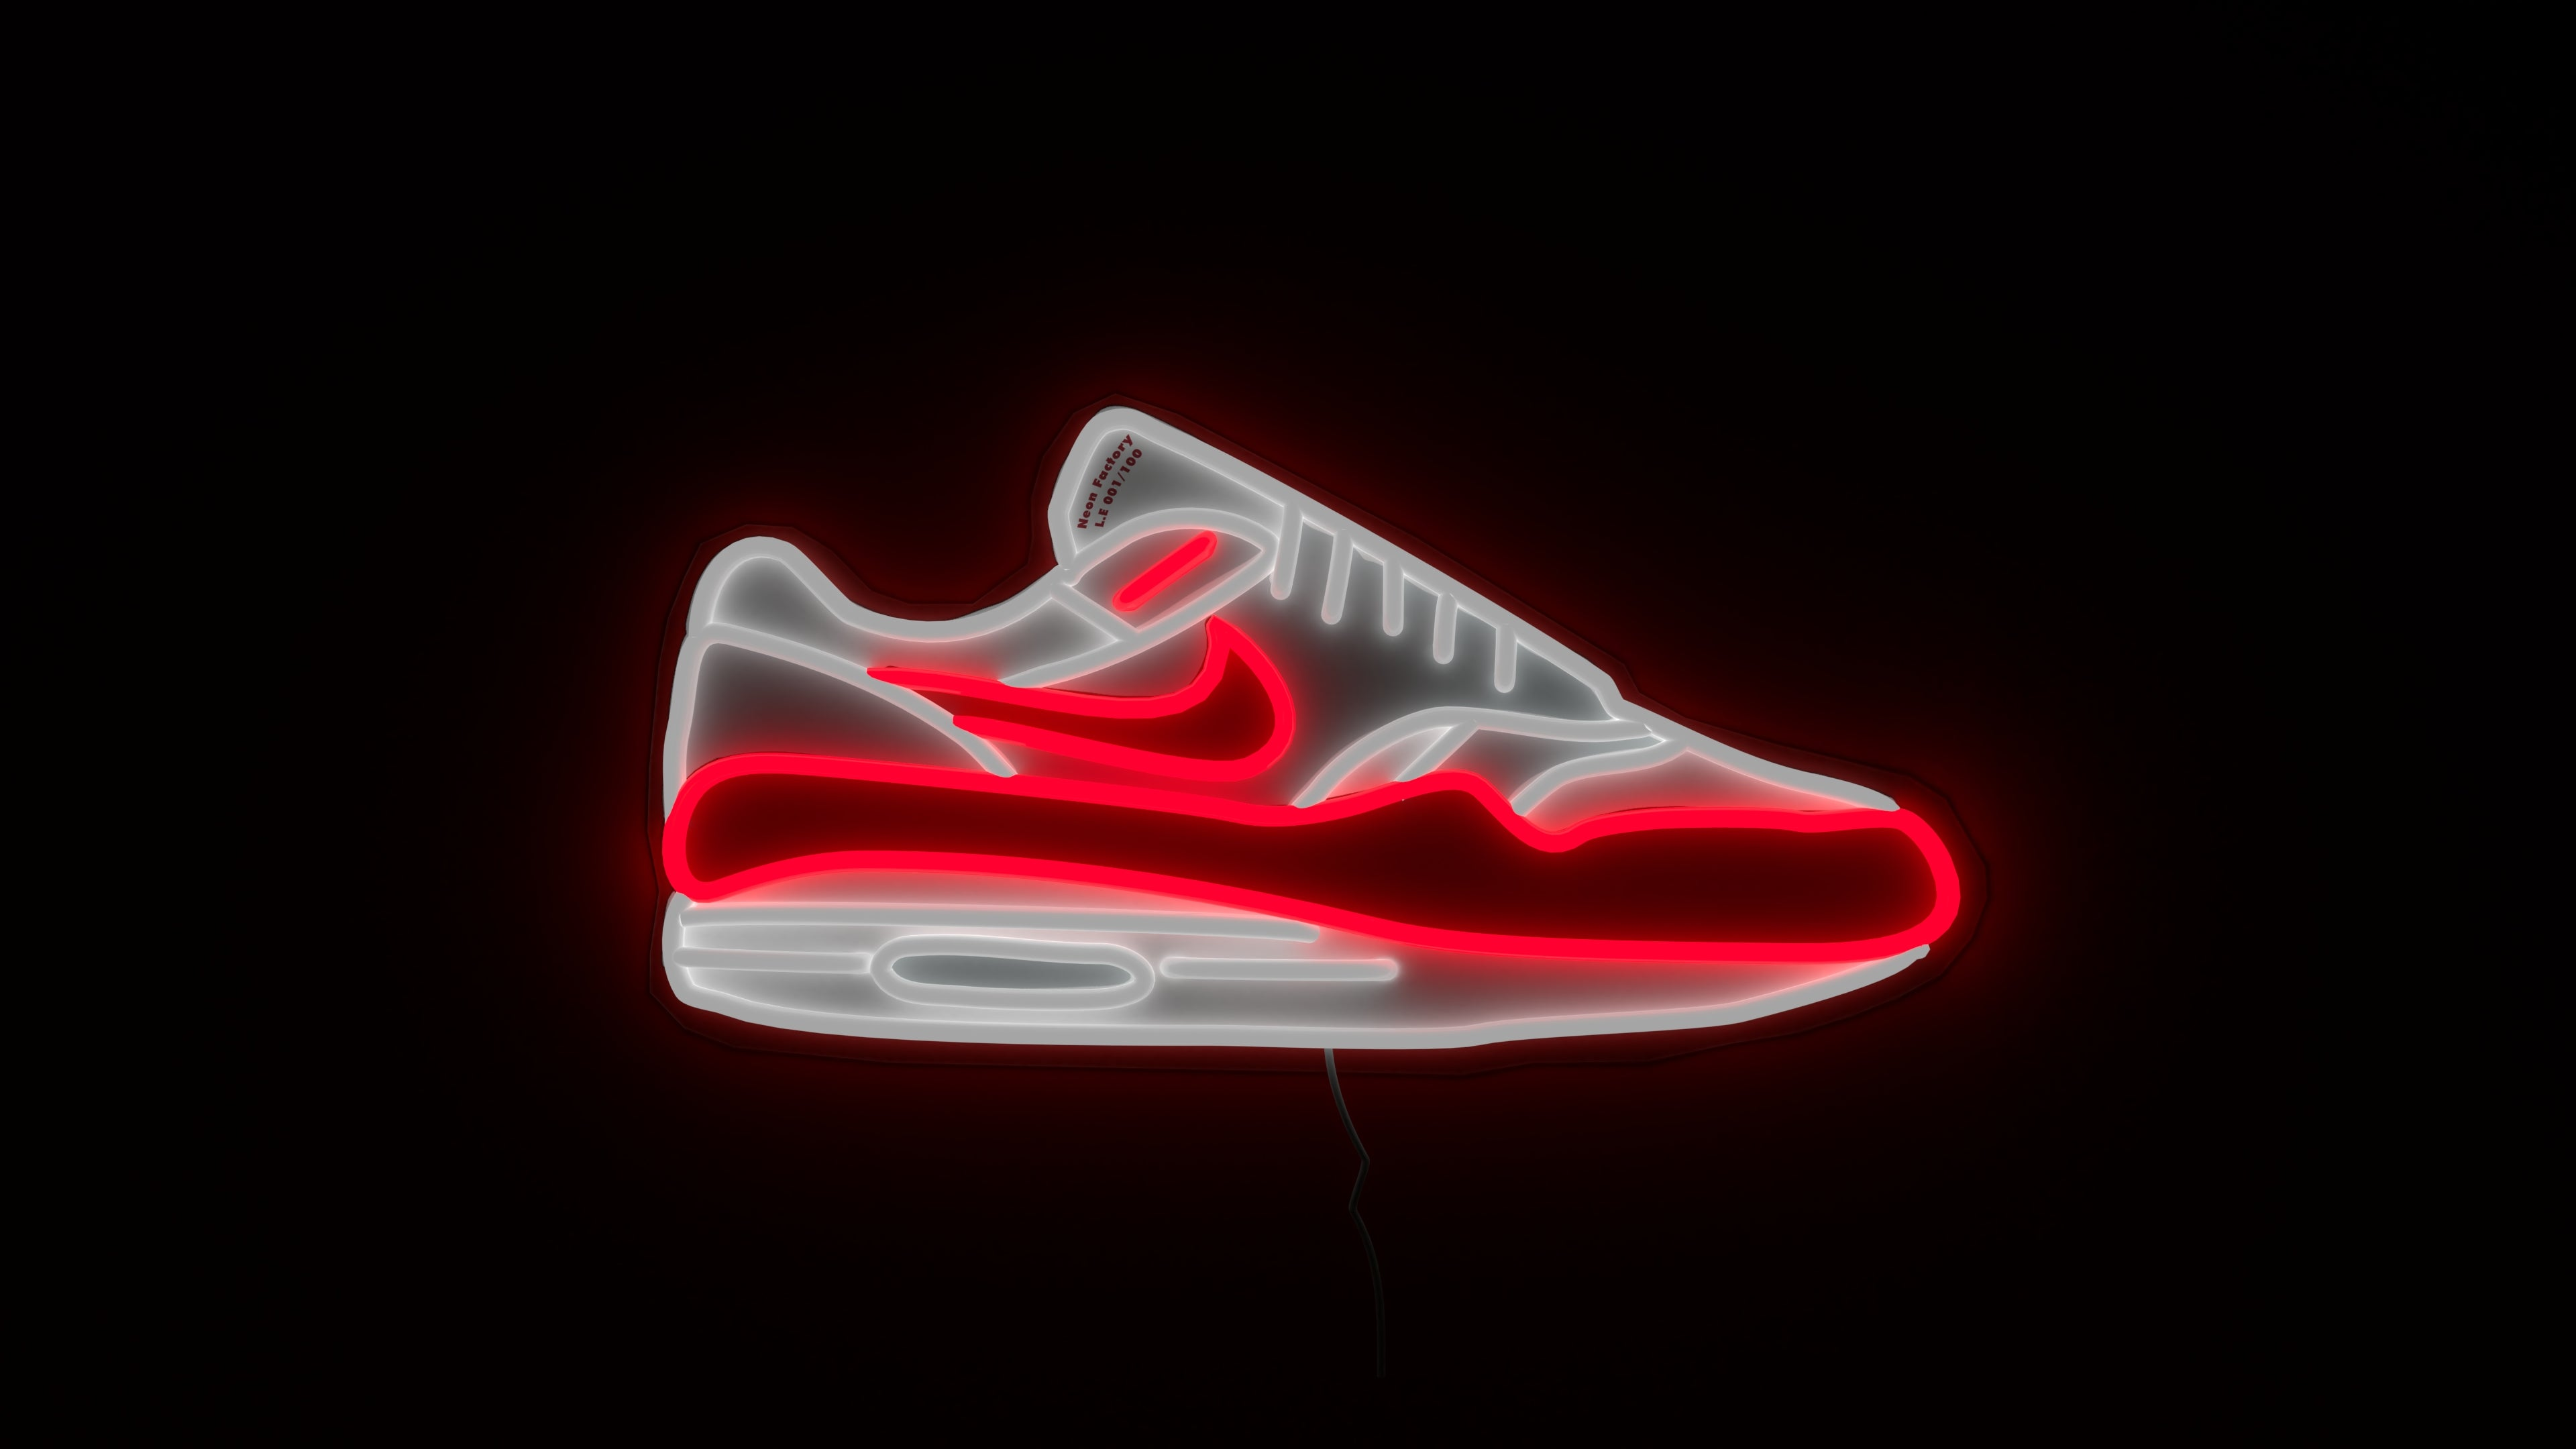 airmax 1 neon sign limited edition